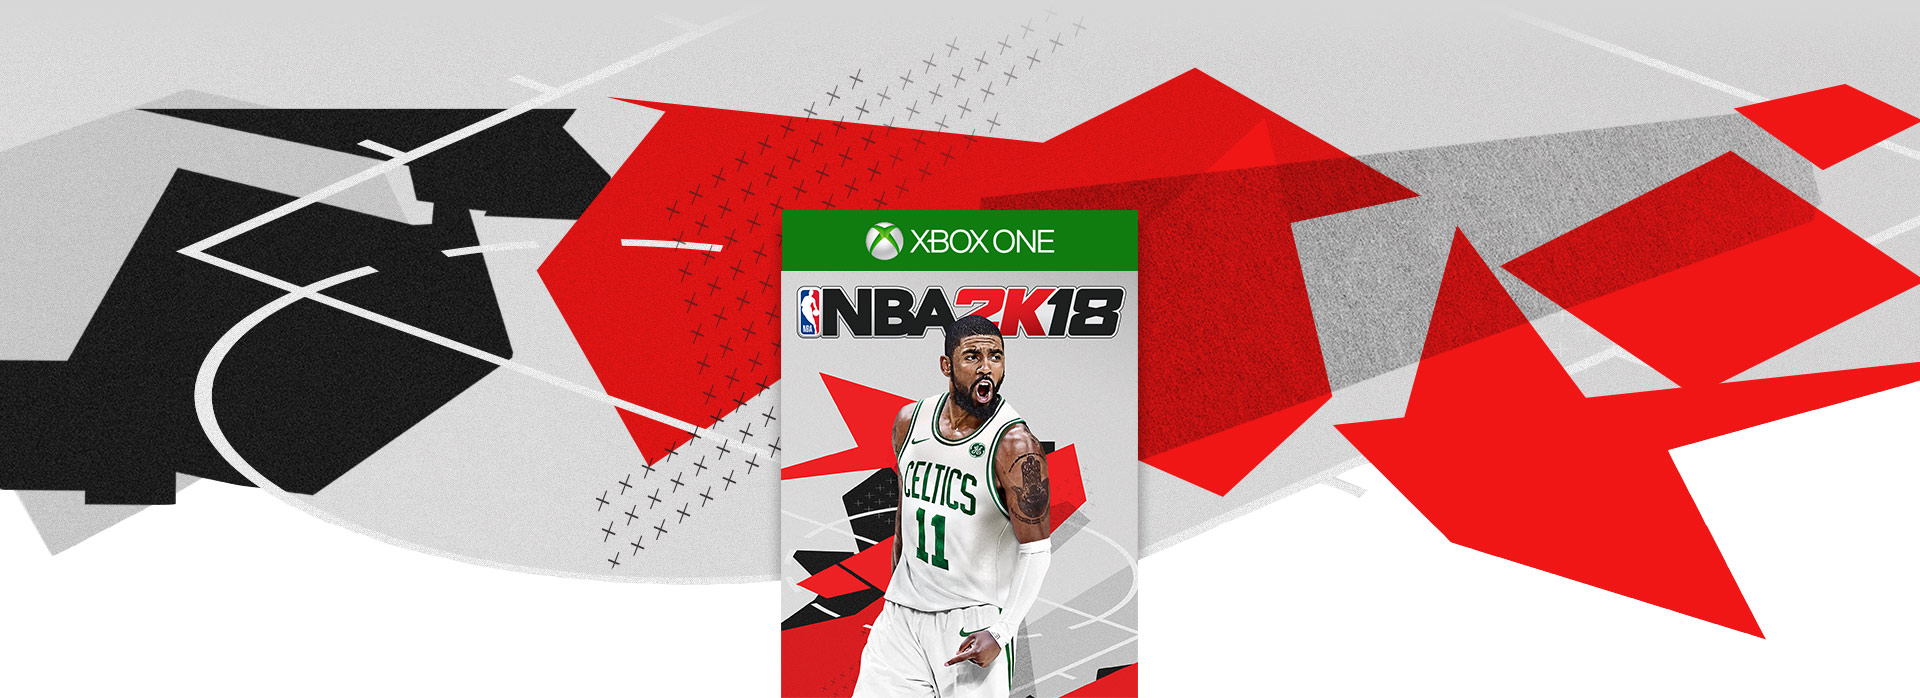 NBA 2K18 box shot. Abstract basketball themed background